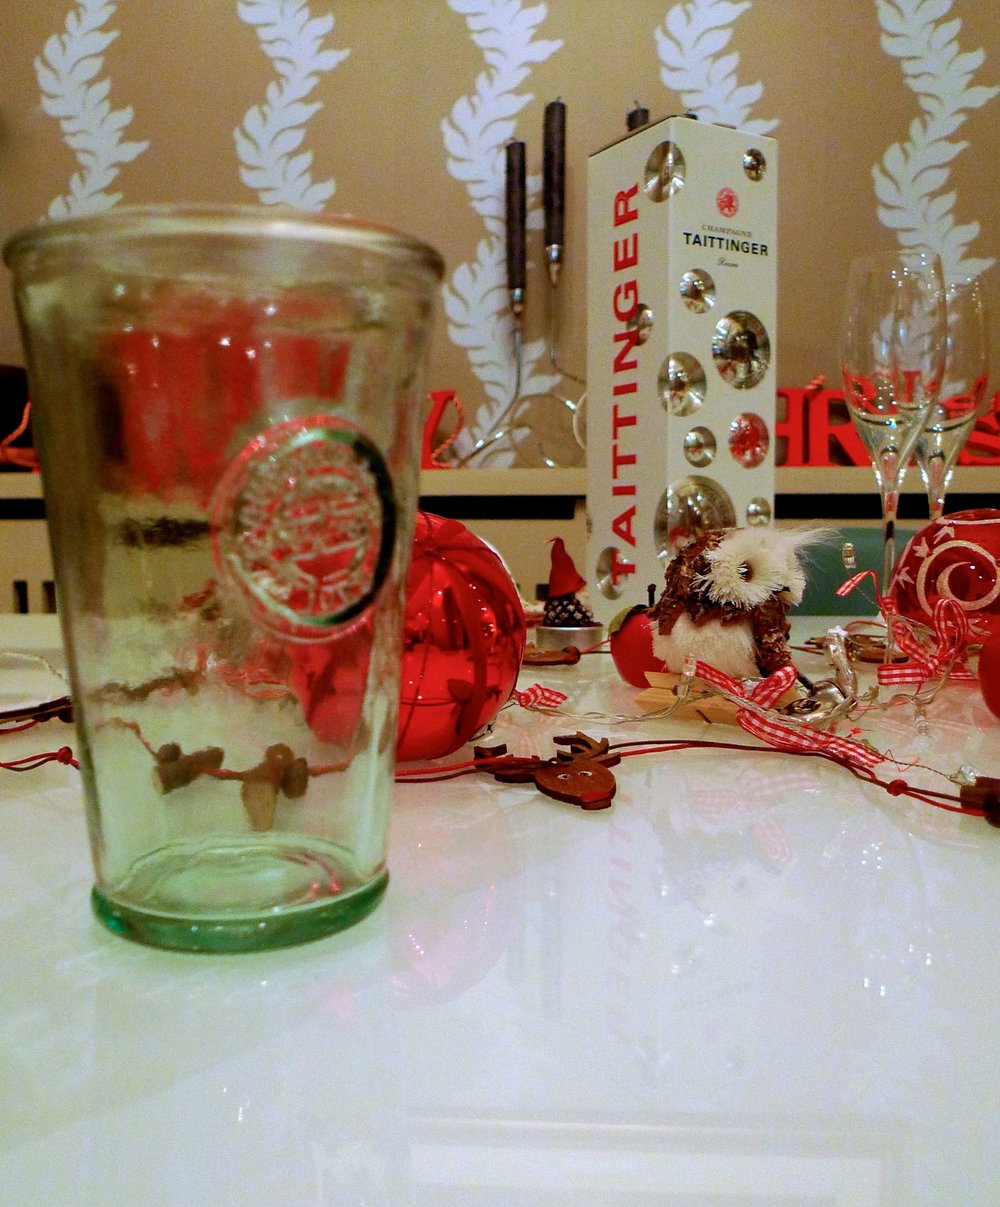 Recycled glasses from TK Maxx